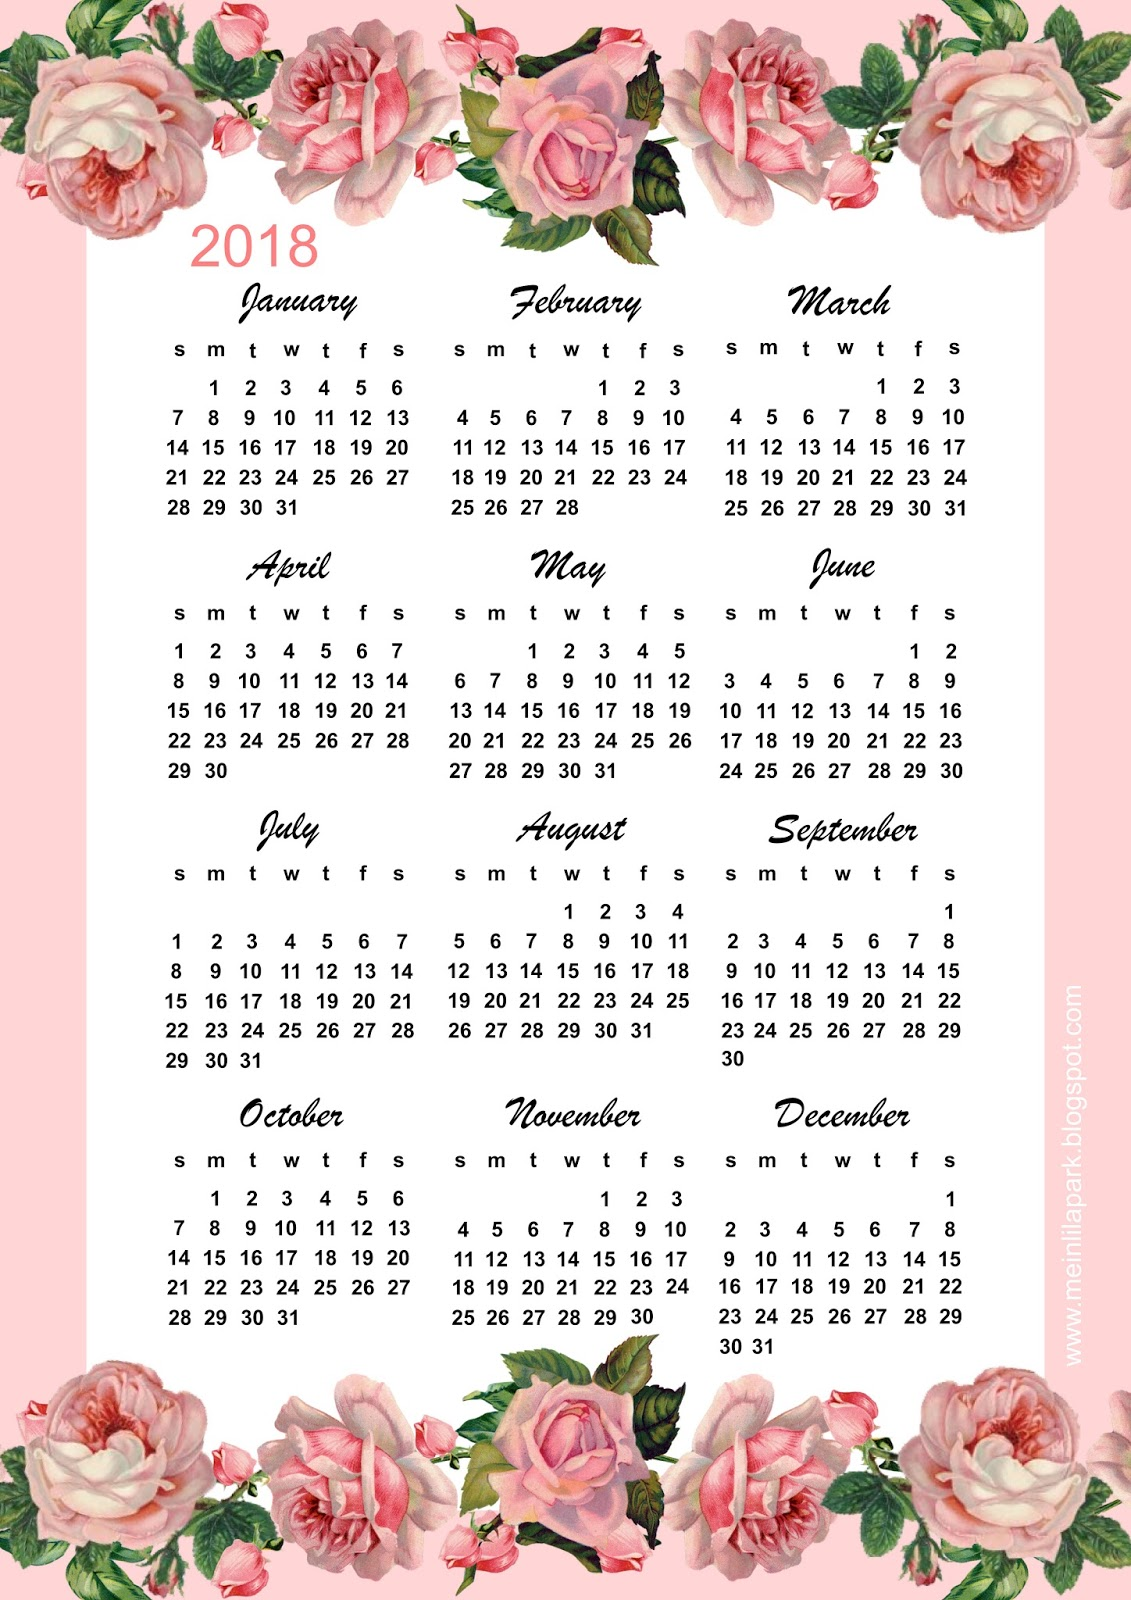 free download printable calendar 2018 2 months per page 6 pages